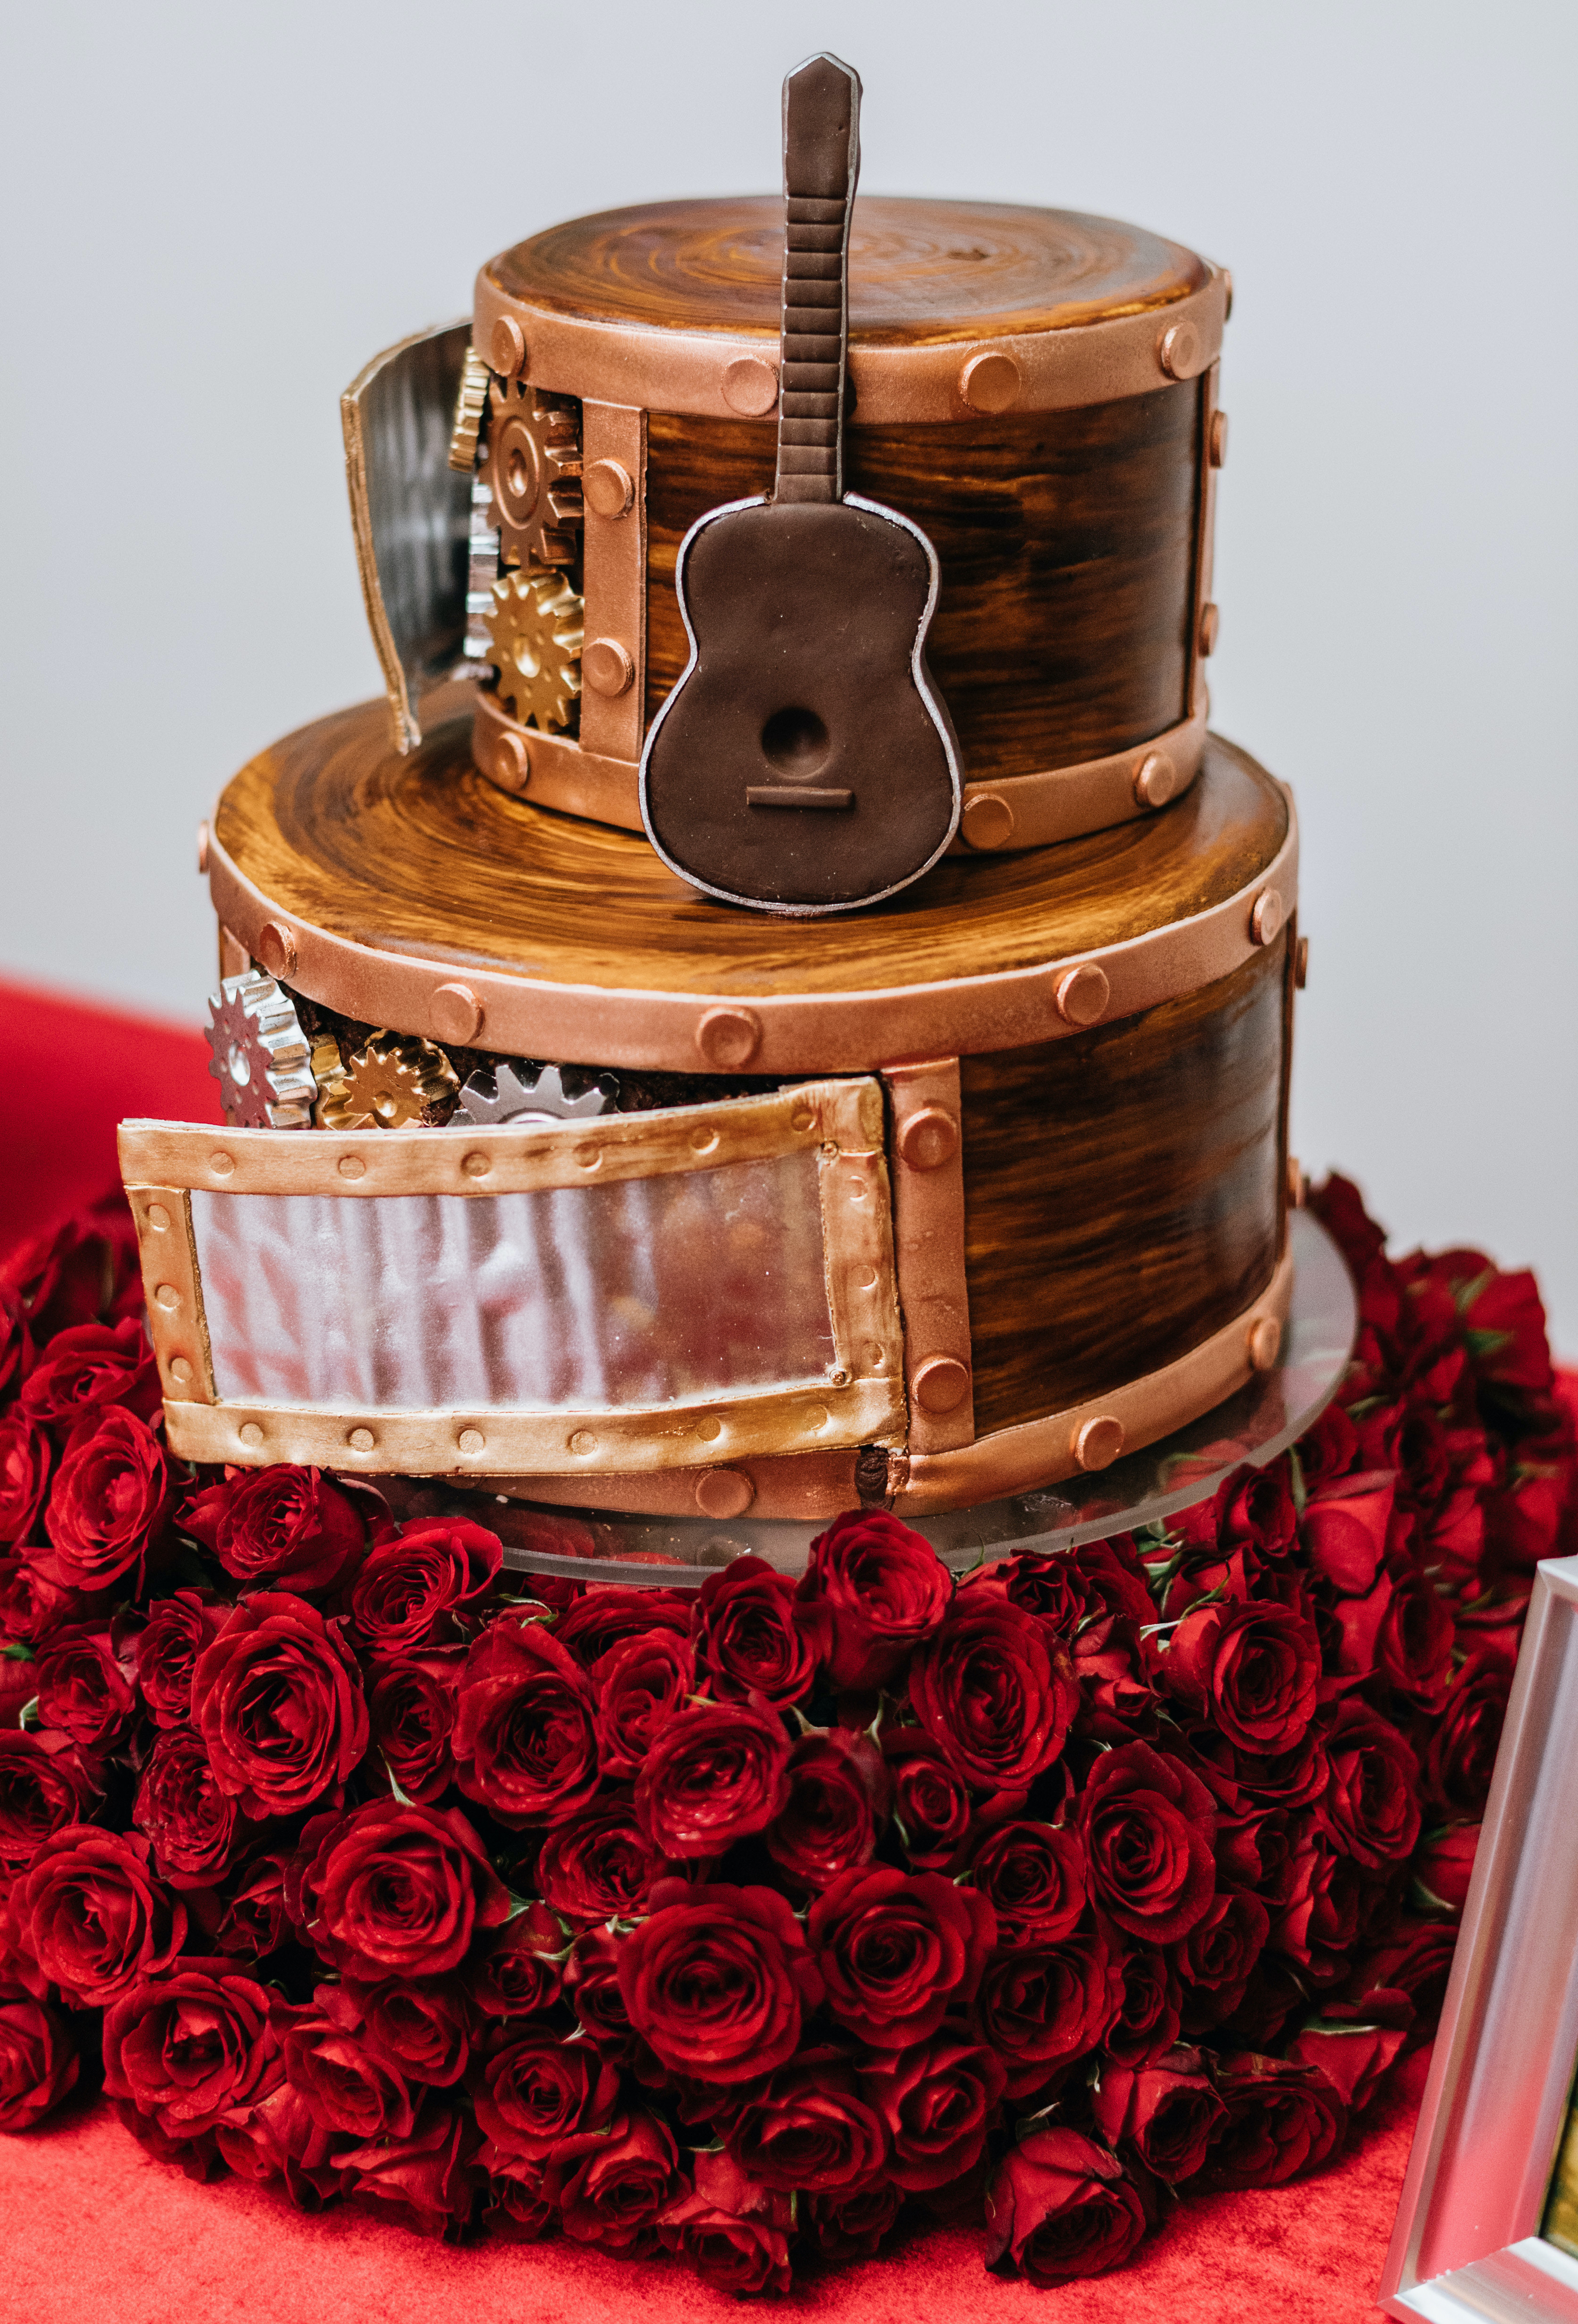 The groom's cake has a guitar on it and red roses surrounding the base.